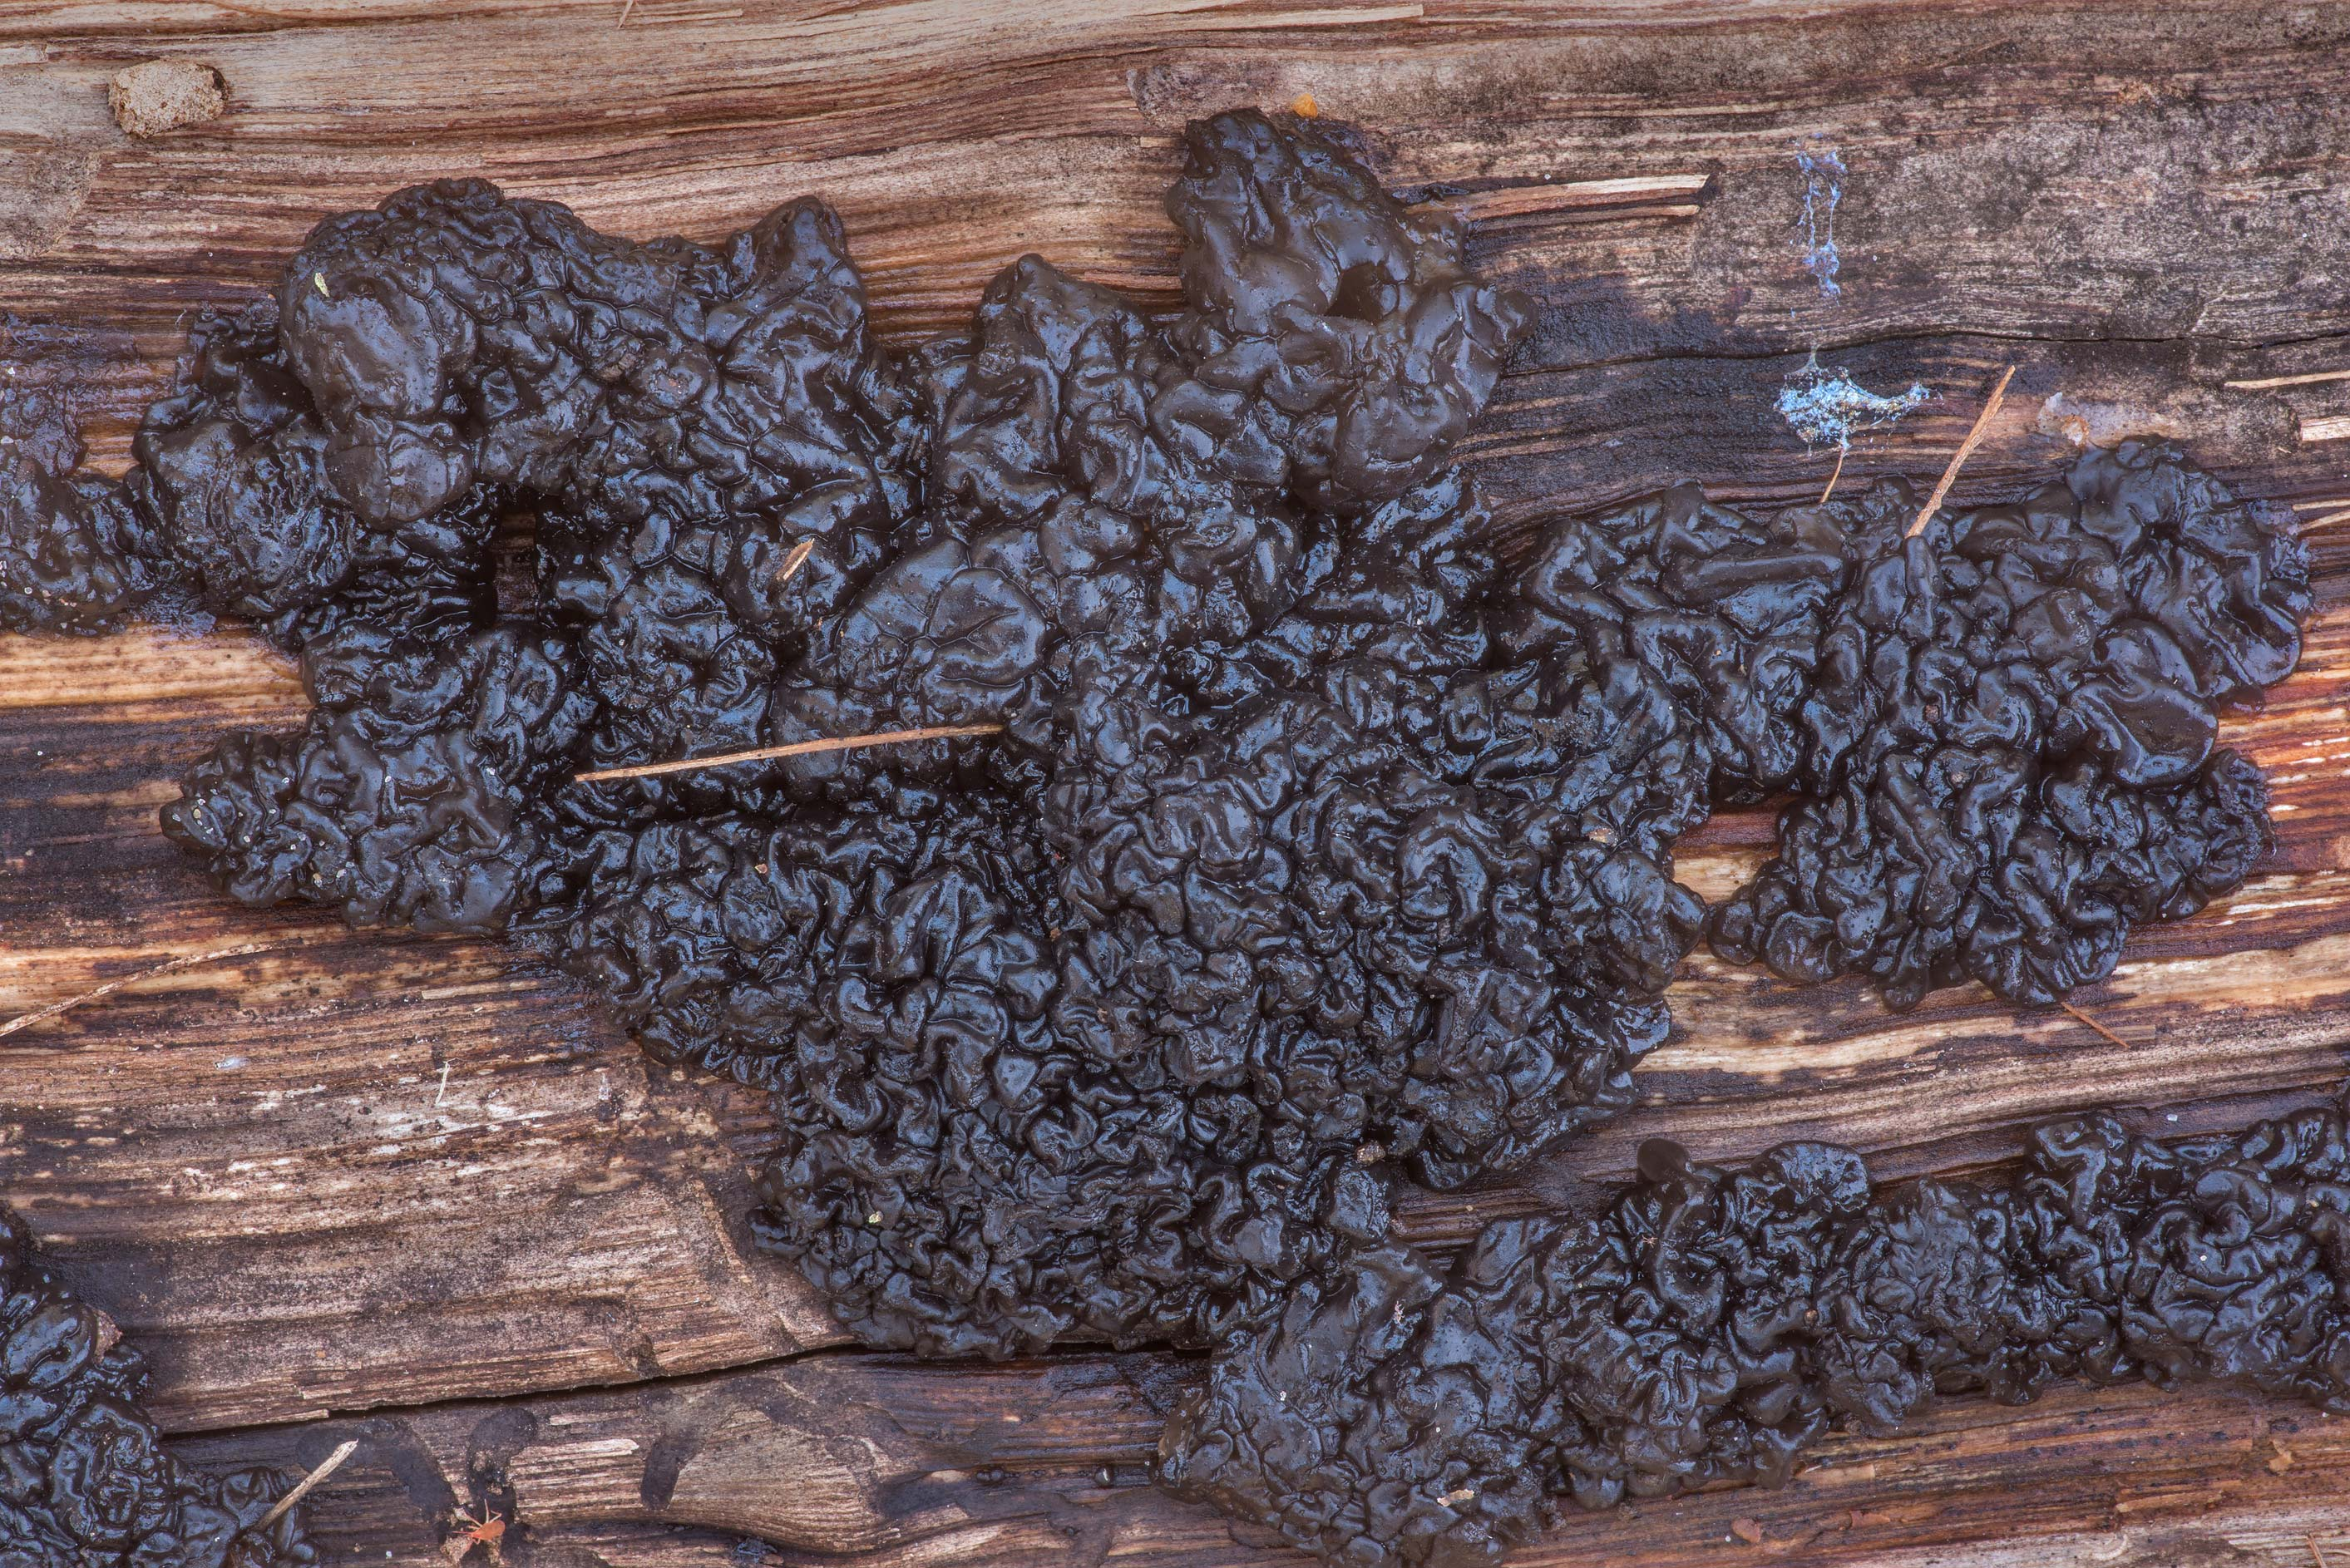 Black witches' butter fungus (Exidia glandulosa...Forest north from Montgomery. Texas